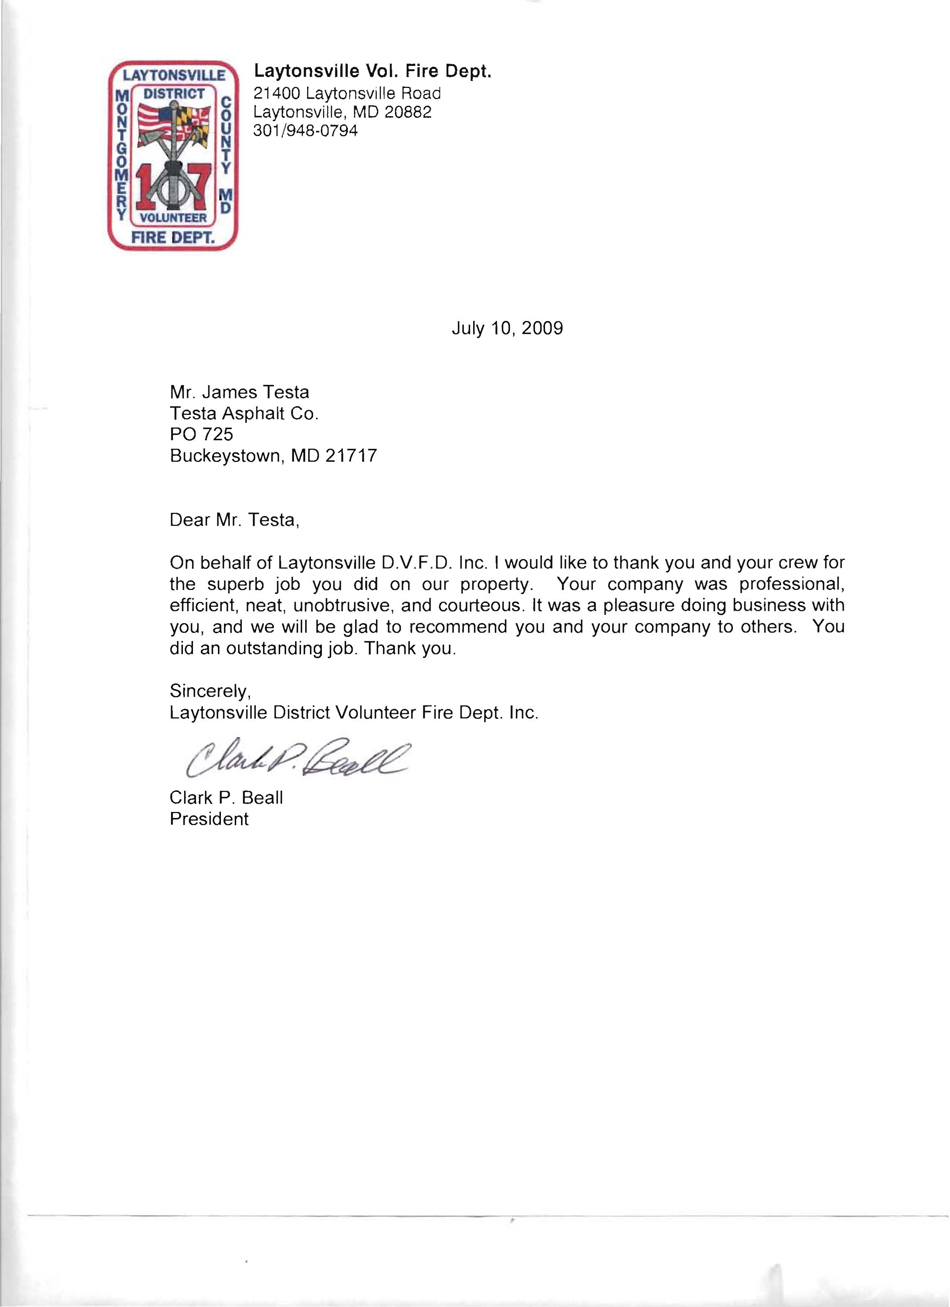 Commercial paving testimonial